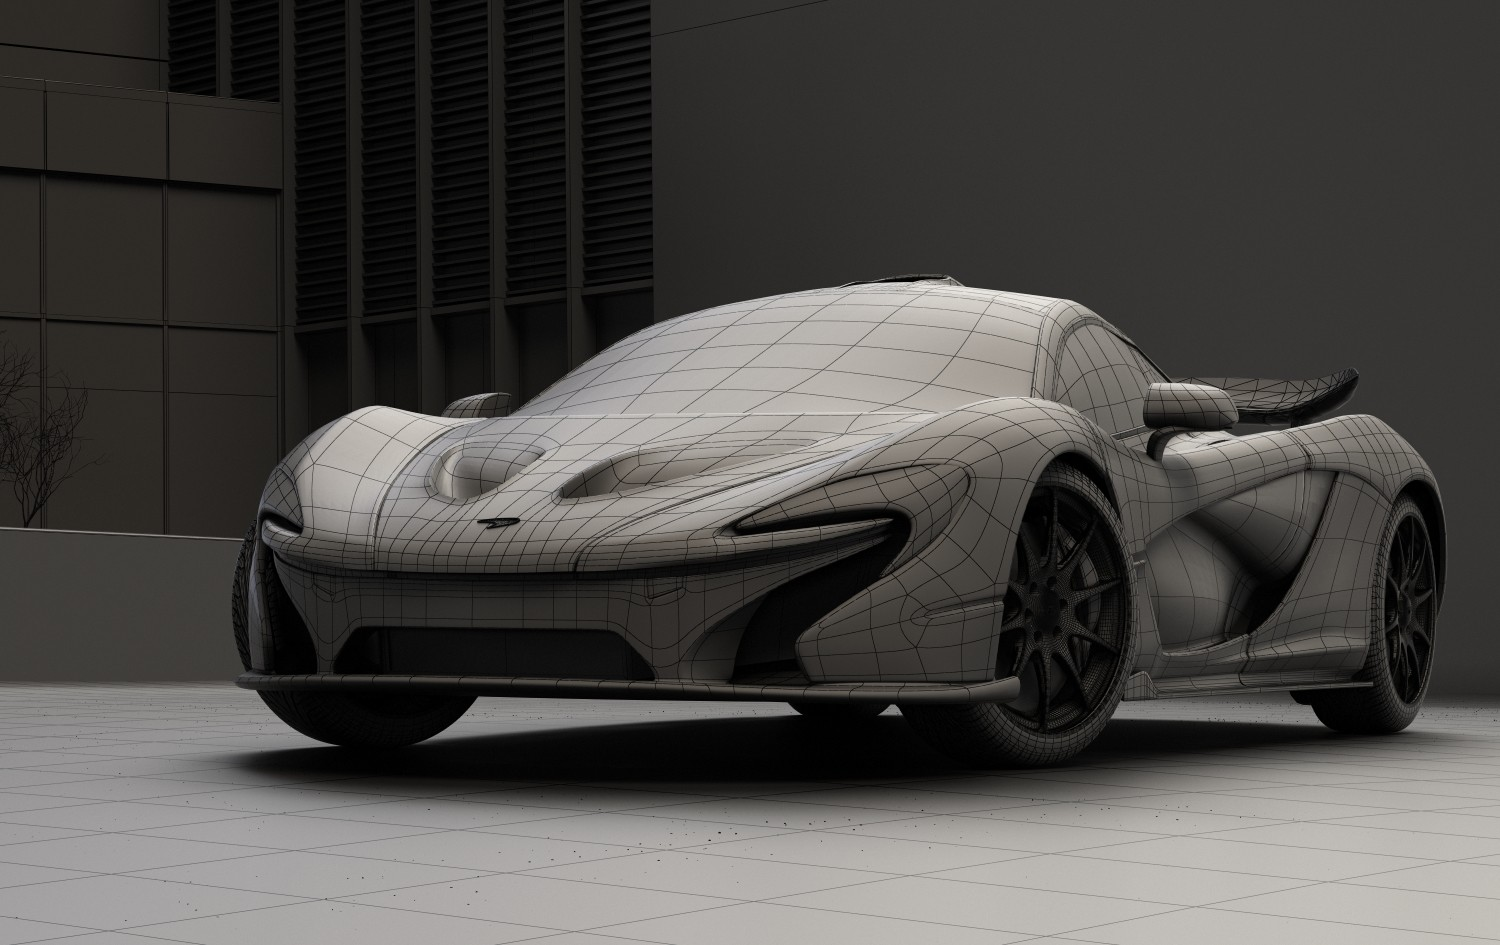 Bruno moreira mclaren p1 wireframe rgb color